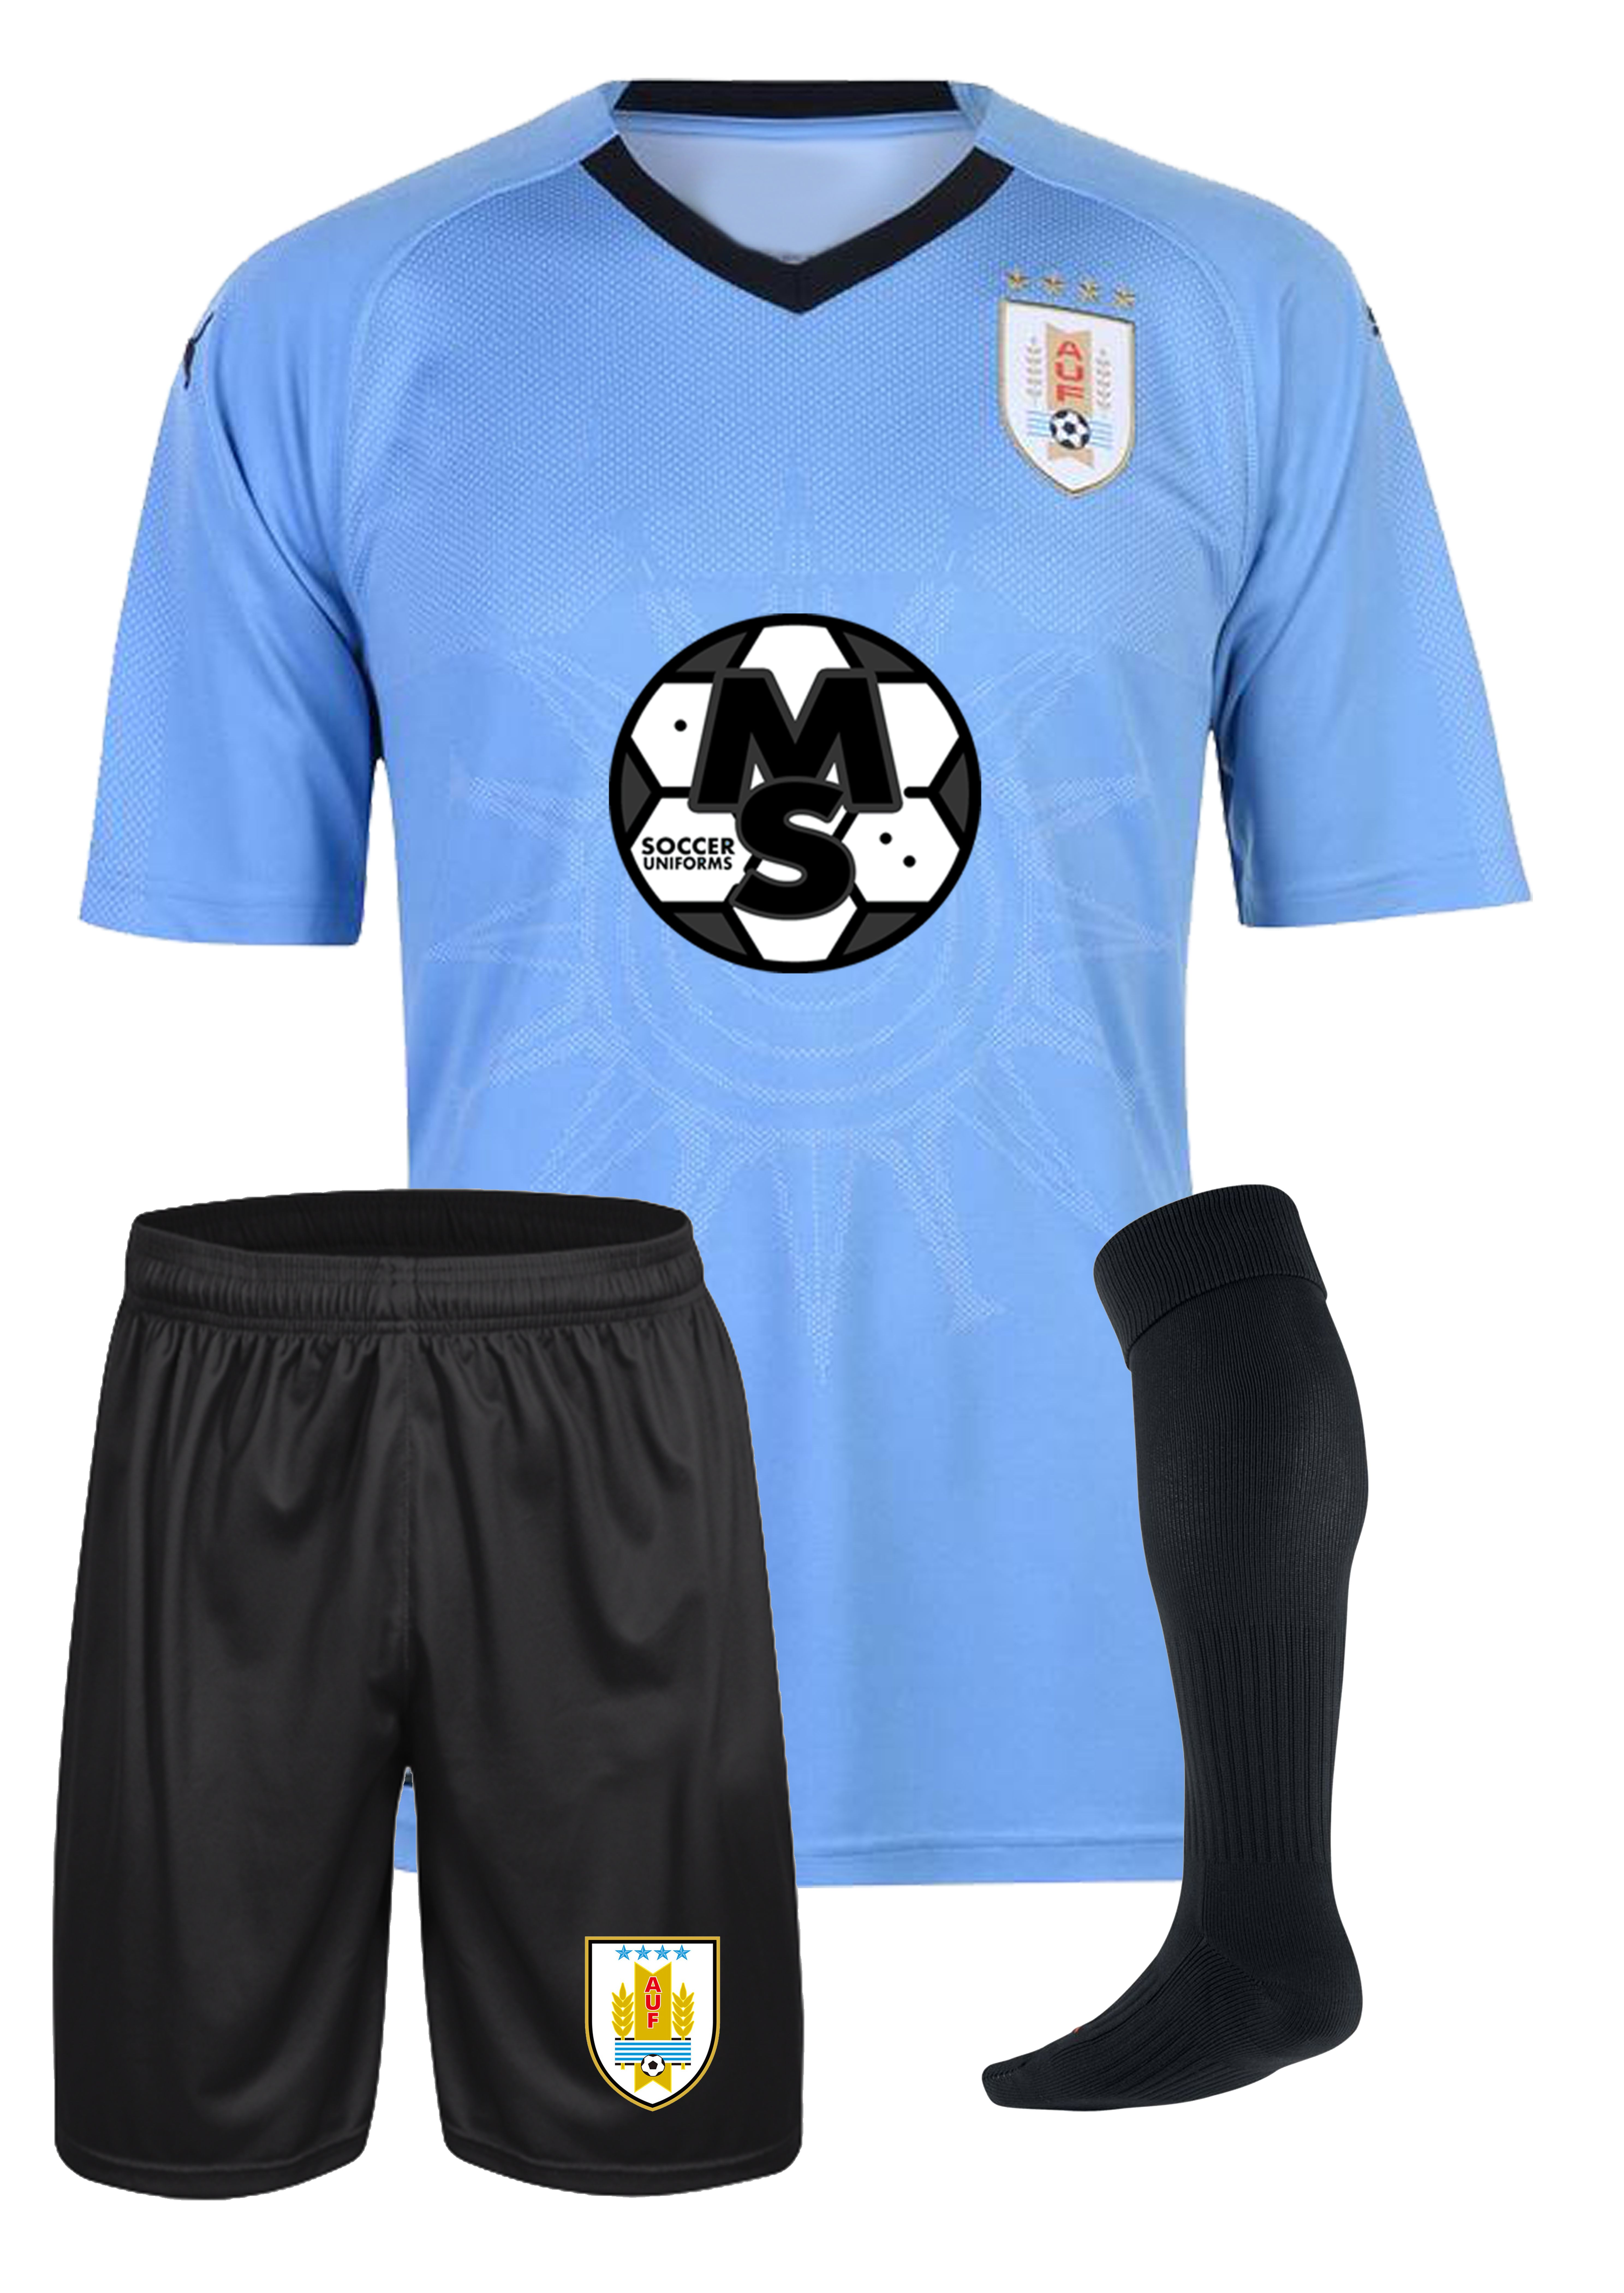 ... uniforms by Soccer Trading Best. Uniformes de futbo del soccer Uruguay  Local 2017-2018 834b6a74f